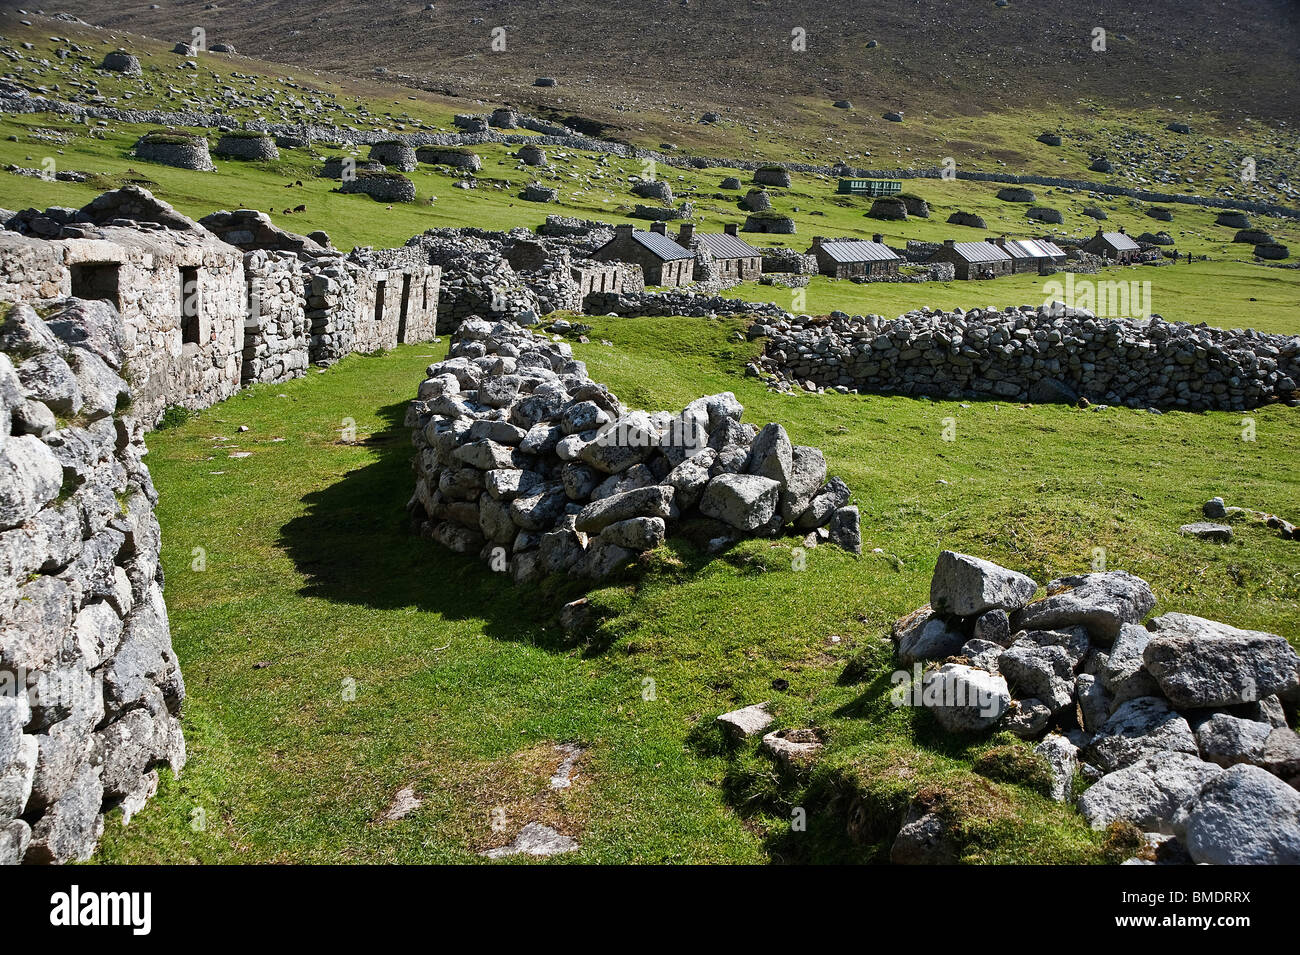 Looking down the row of abandoned cottages in the main street of Village Bay on the island of St. Kilda - Stock Image